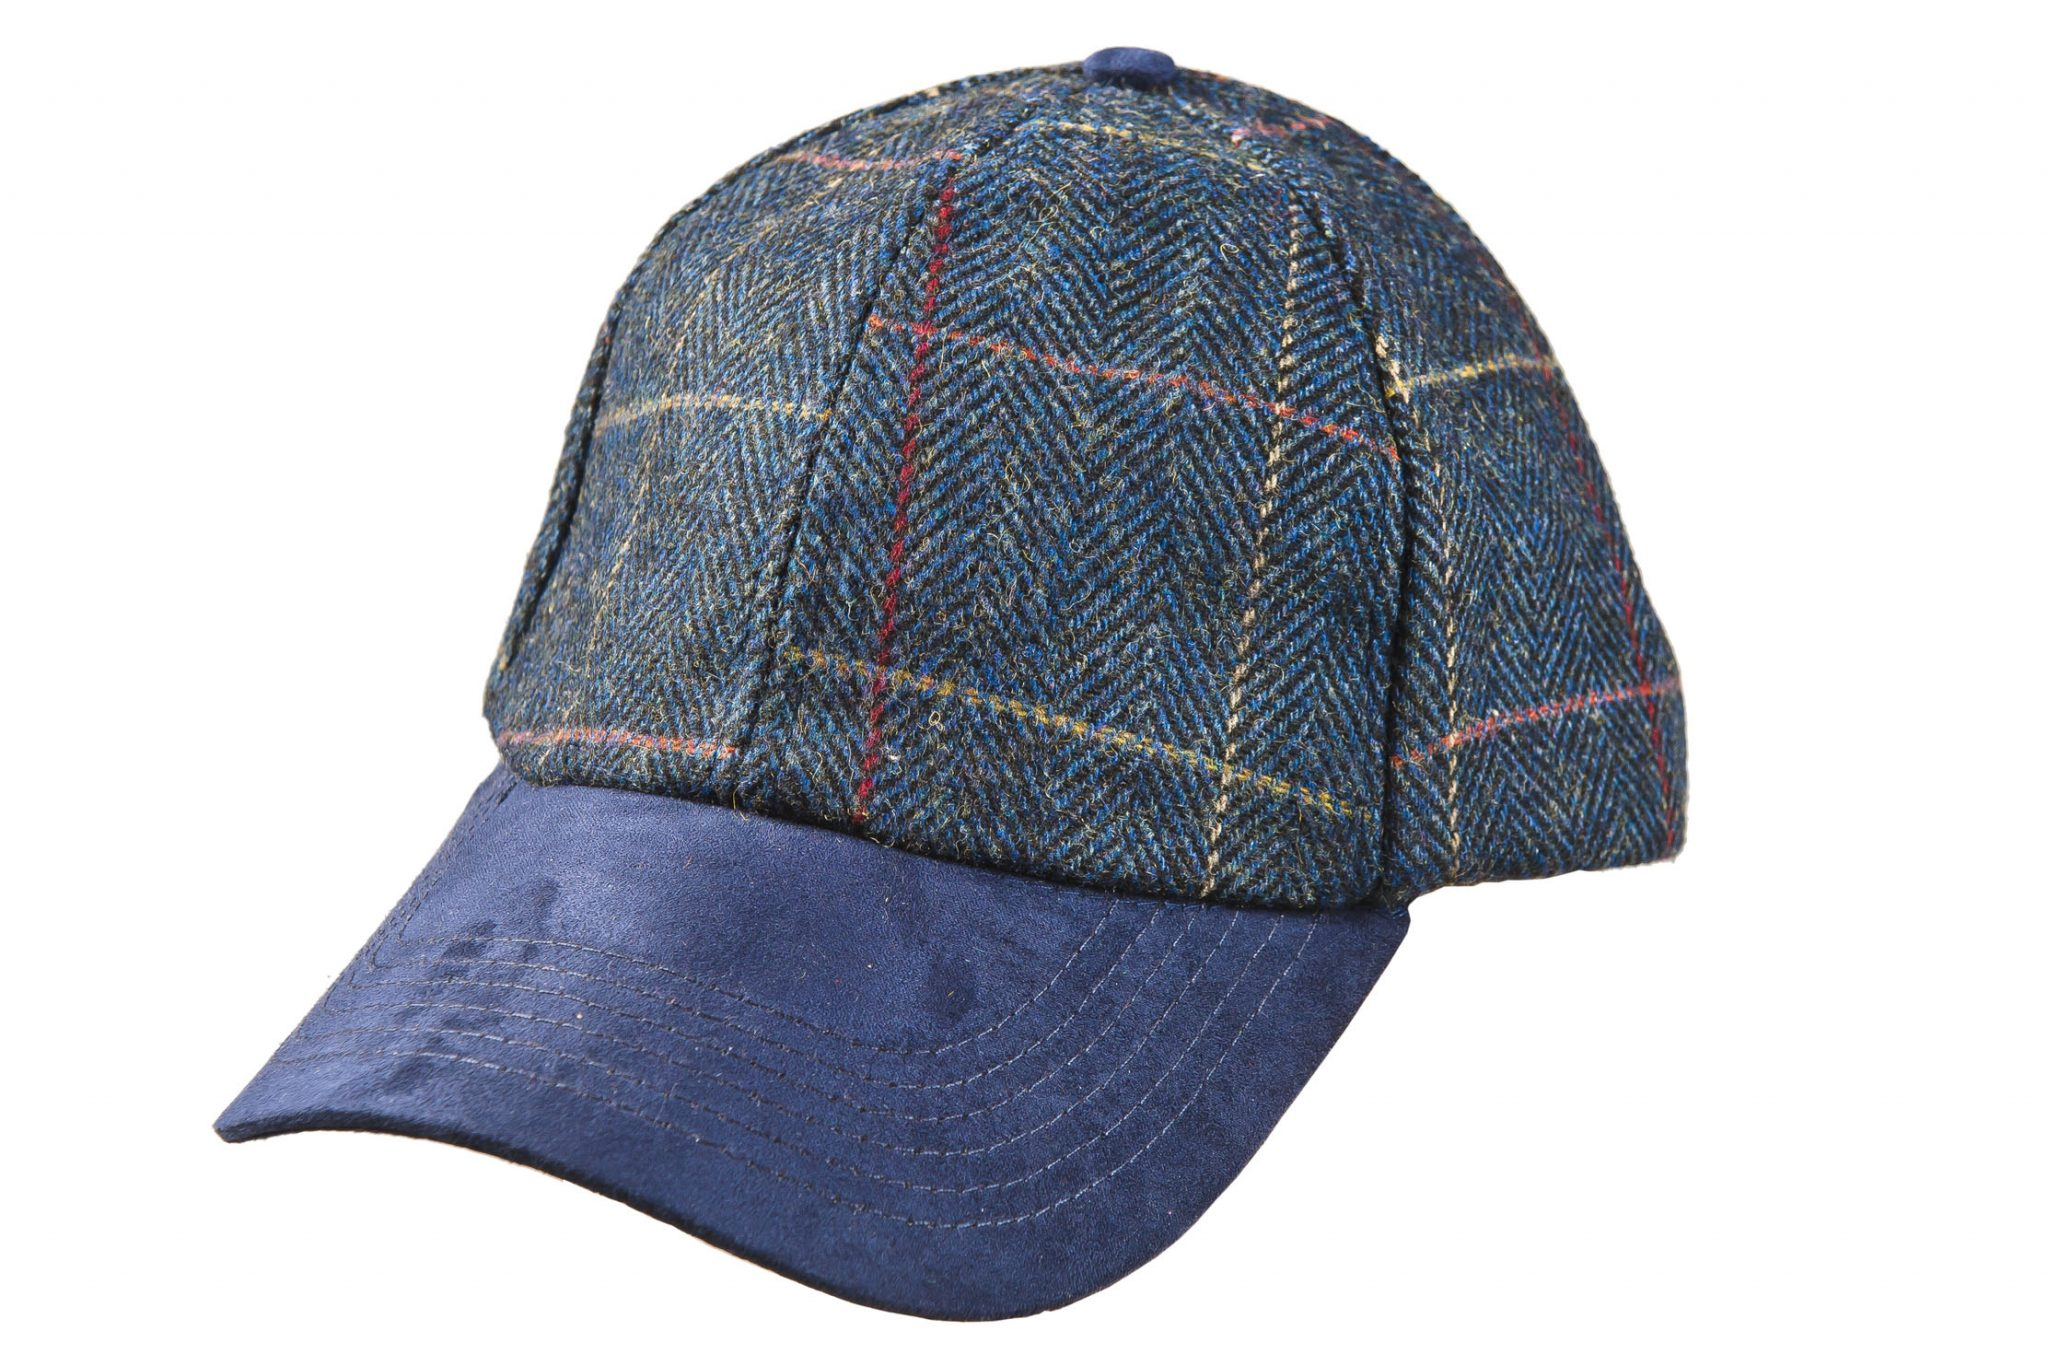 Classic tweed ball cap